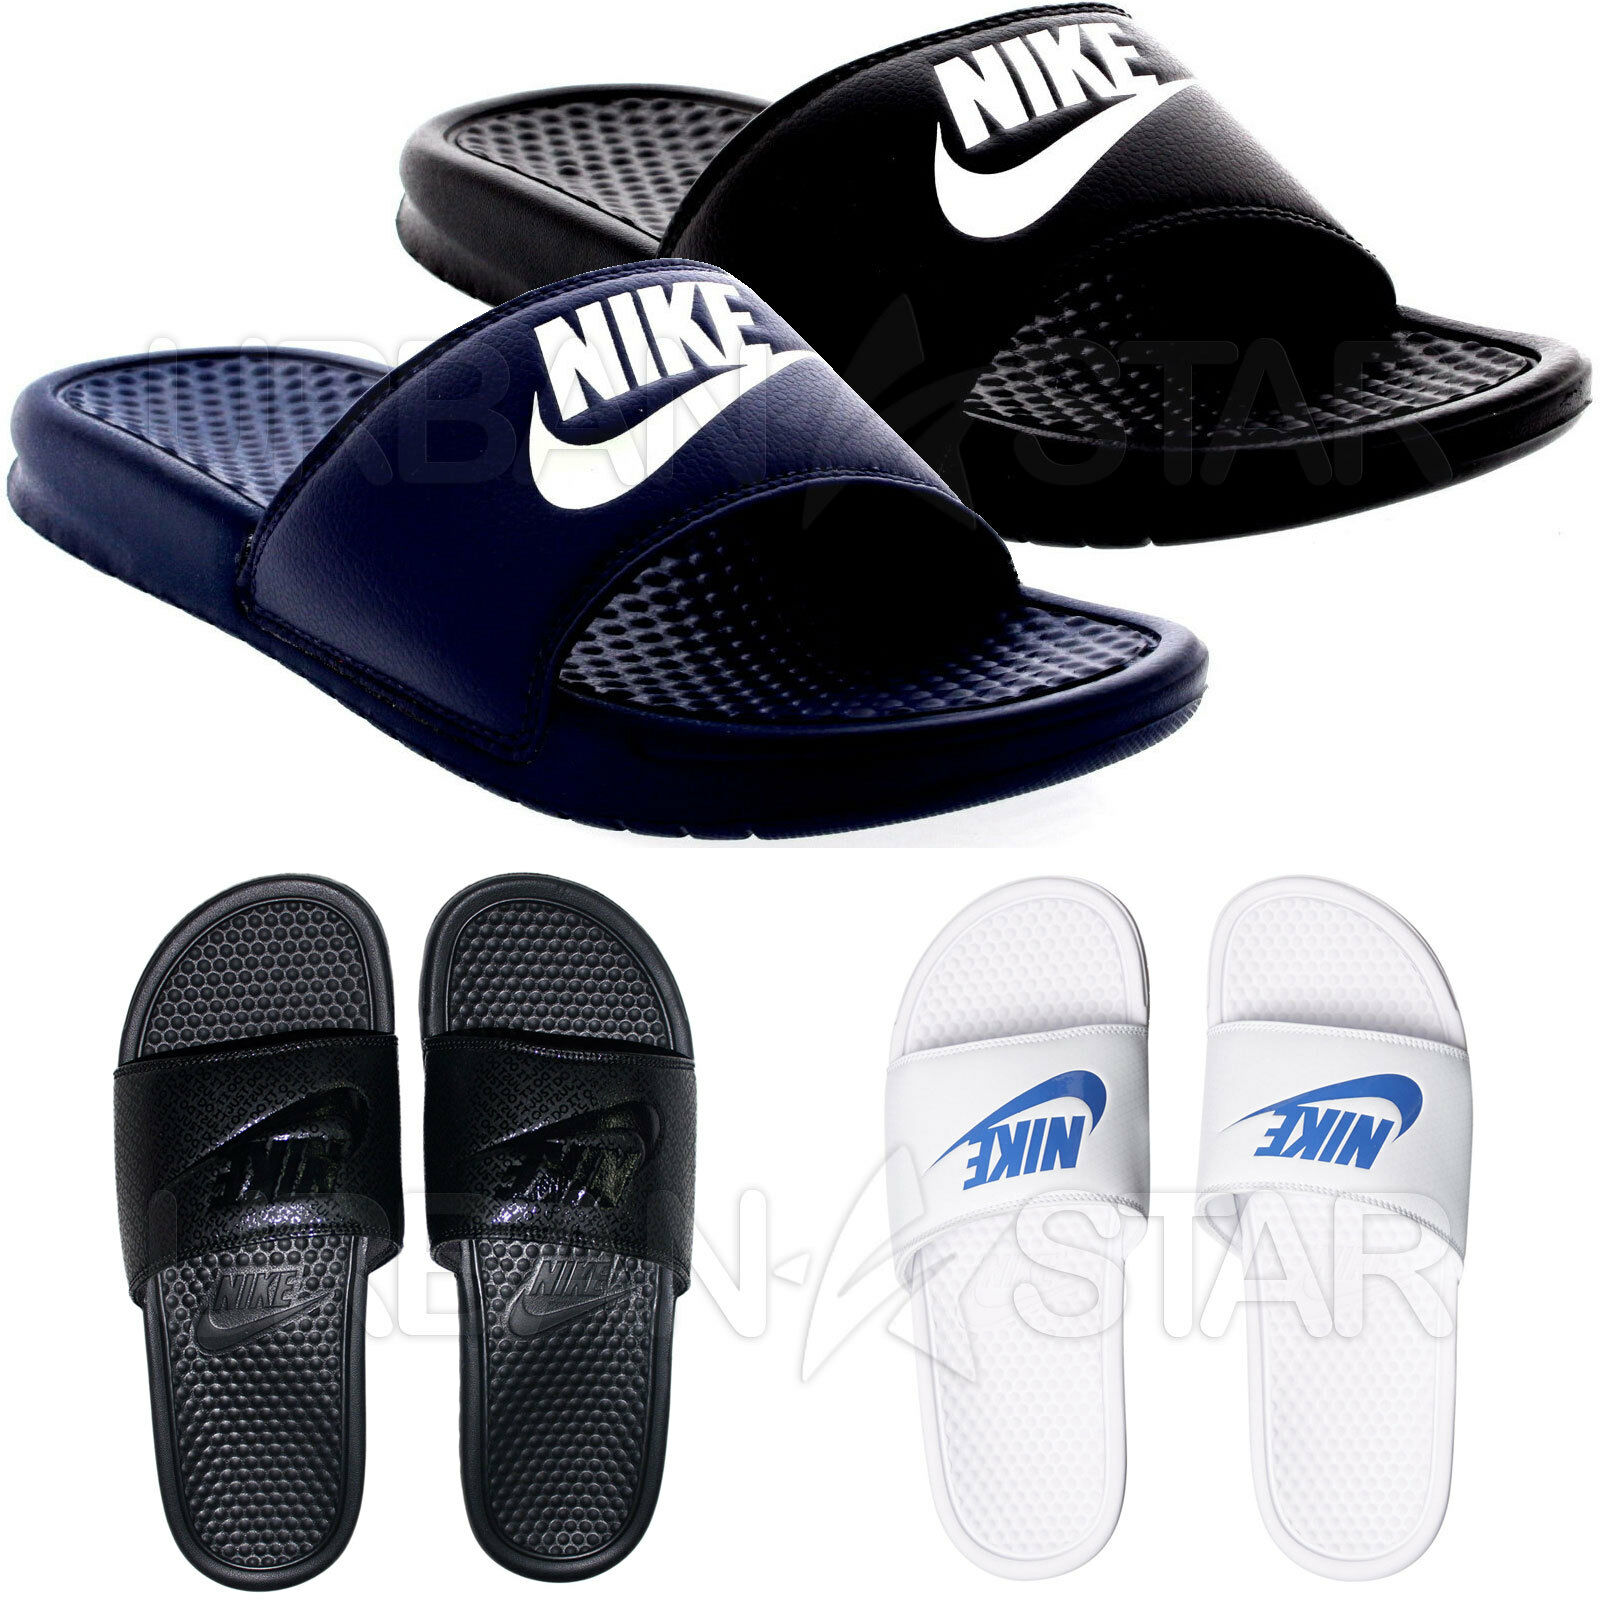 5f5a17960 Nike Spencer JDI Men s Beach Shoes Slide Bath Slippers Sandals Shower EUR  46 Dark Blue 343880403 for sale online